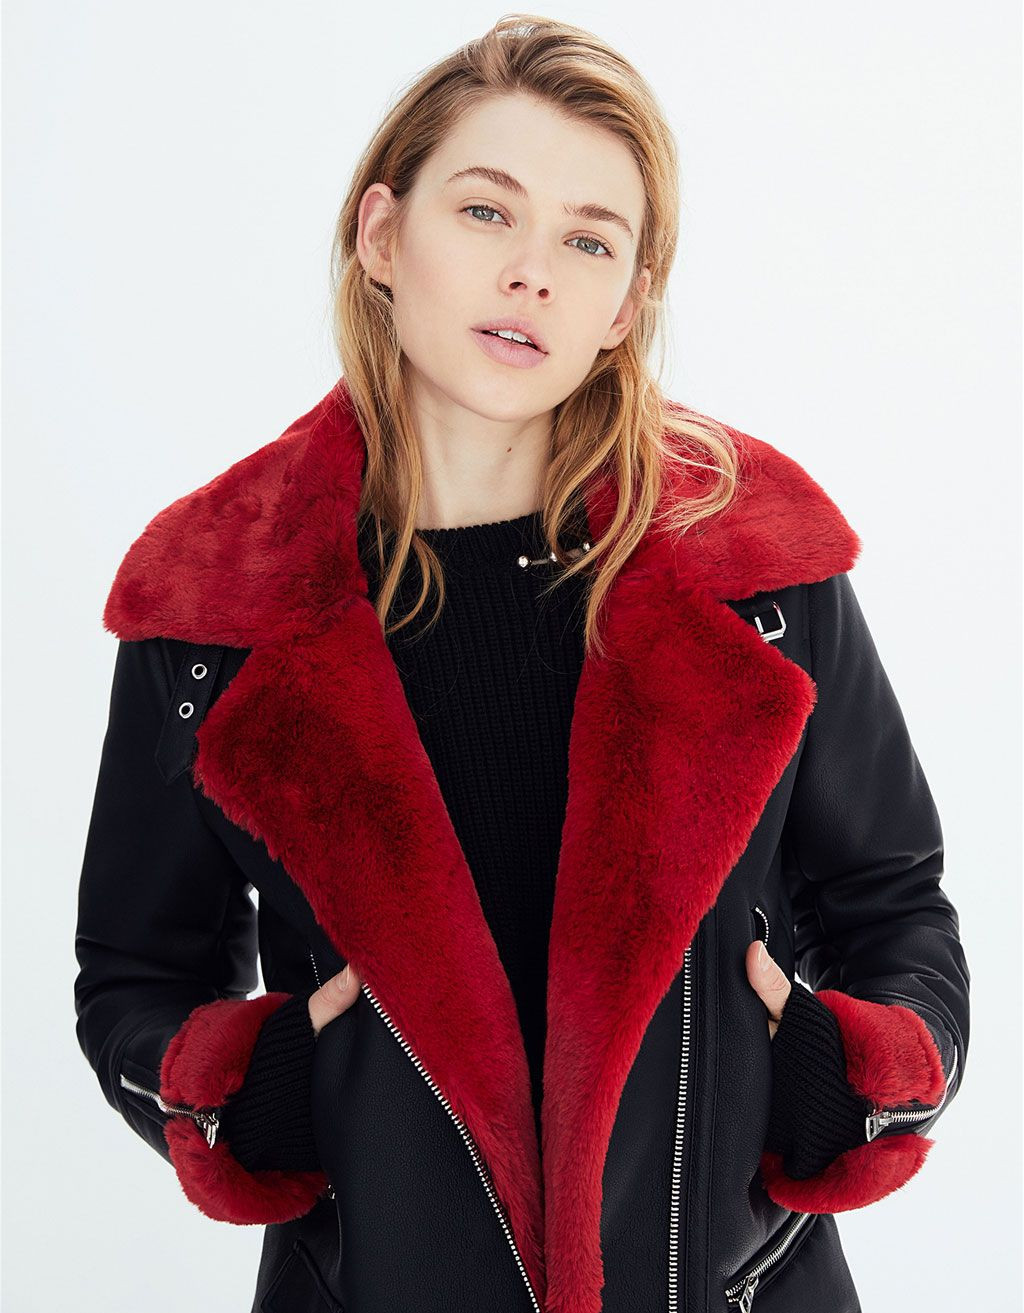 Chaquetas De Pelo Mujer Único Faux Shearling Biker Jacket Discover This and Many More Items In Of Chaquetas De Pelo Mujer Lujo Pin De Valentina Roc­o González Jerez En Look Mujer